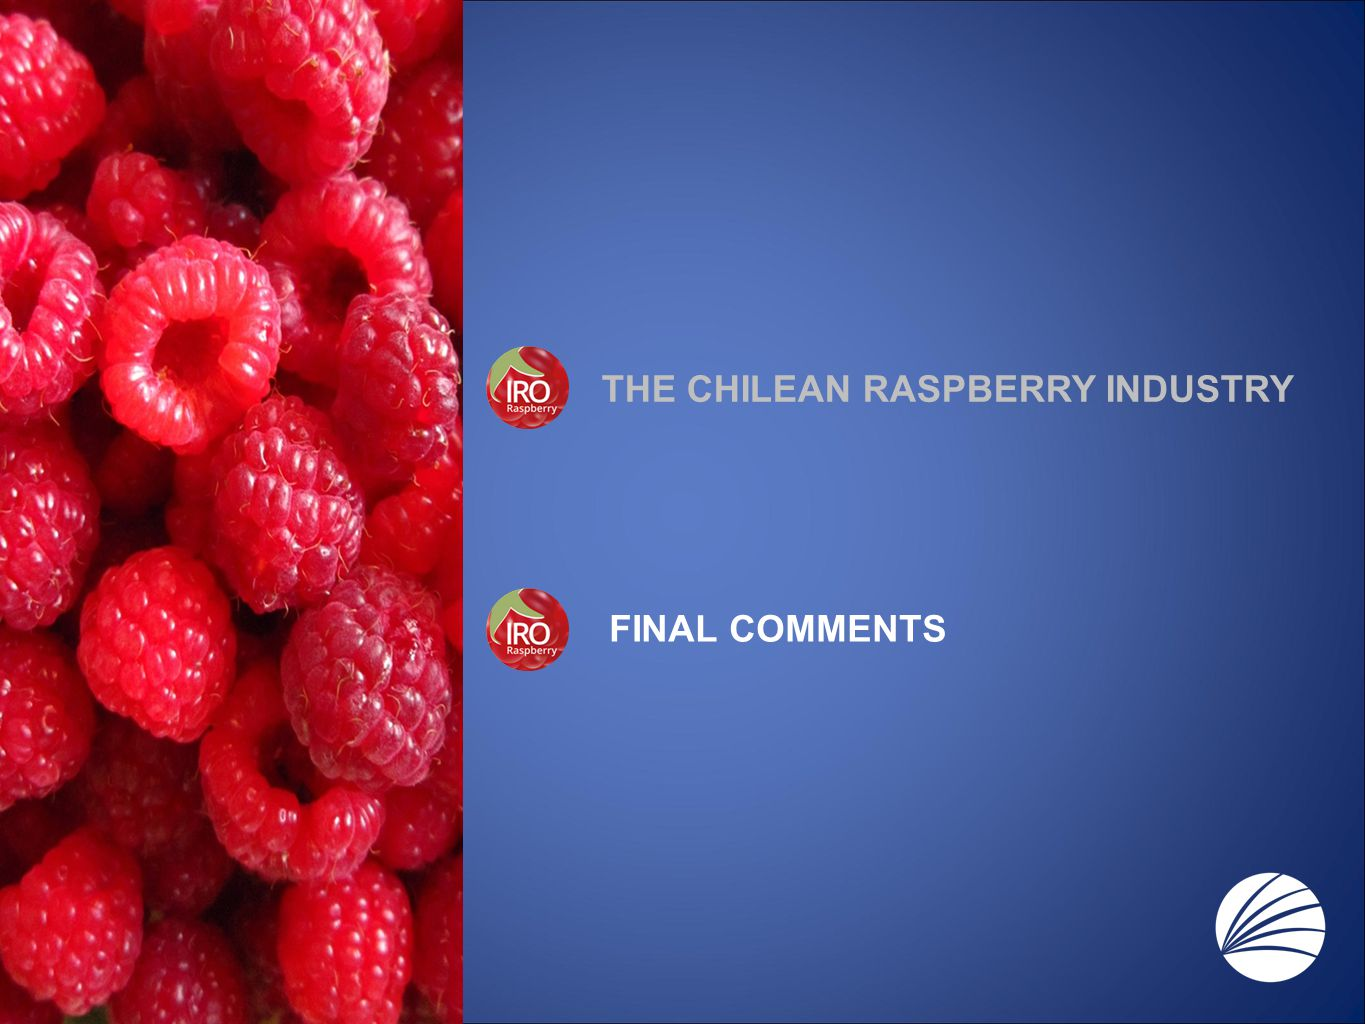 THE CHILEAN RASPBERRY INDUSTRY FINAL COMMENTS